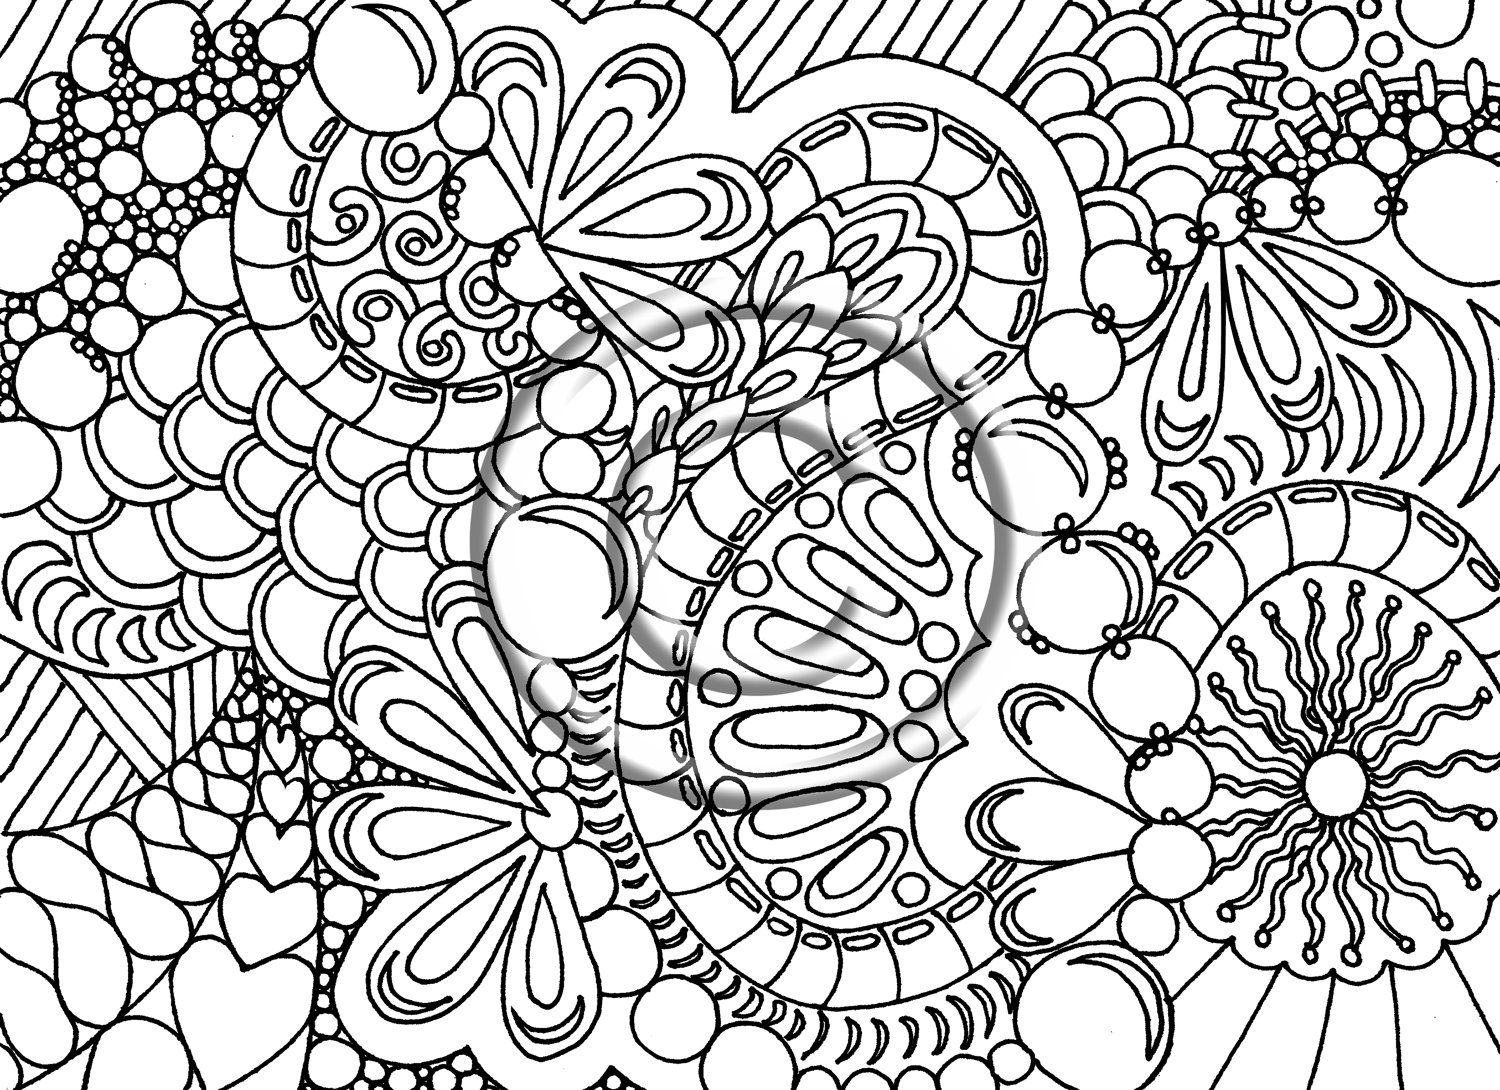 Printable coloring pages for teenage hard - Coloring Pages Fair Color By Number Pages For Adults Hard Coloring Pages For Teenagers Difficult Color By Number Difficult Color By Number Pages For Adults